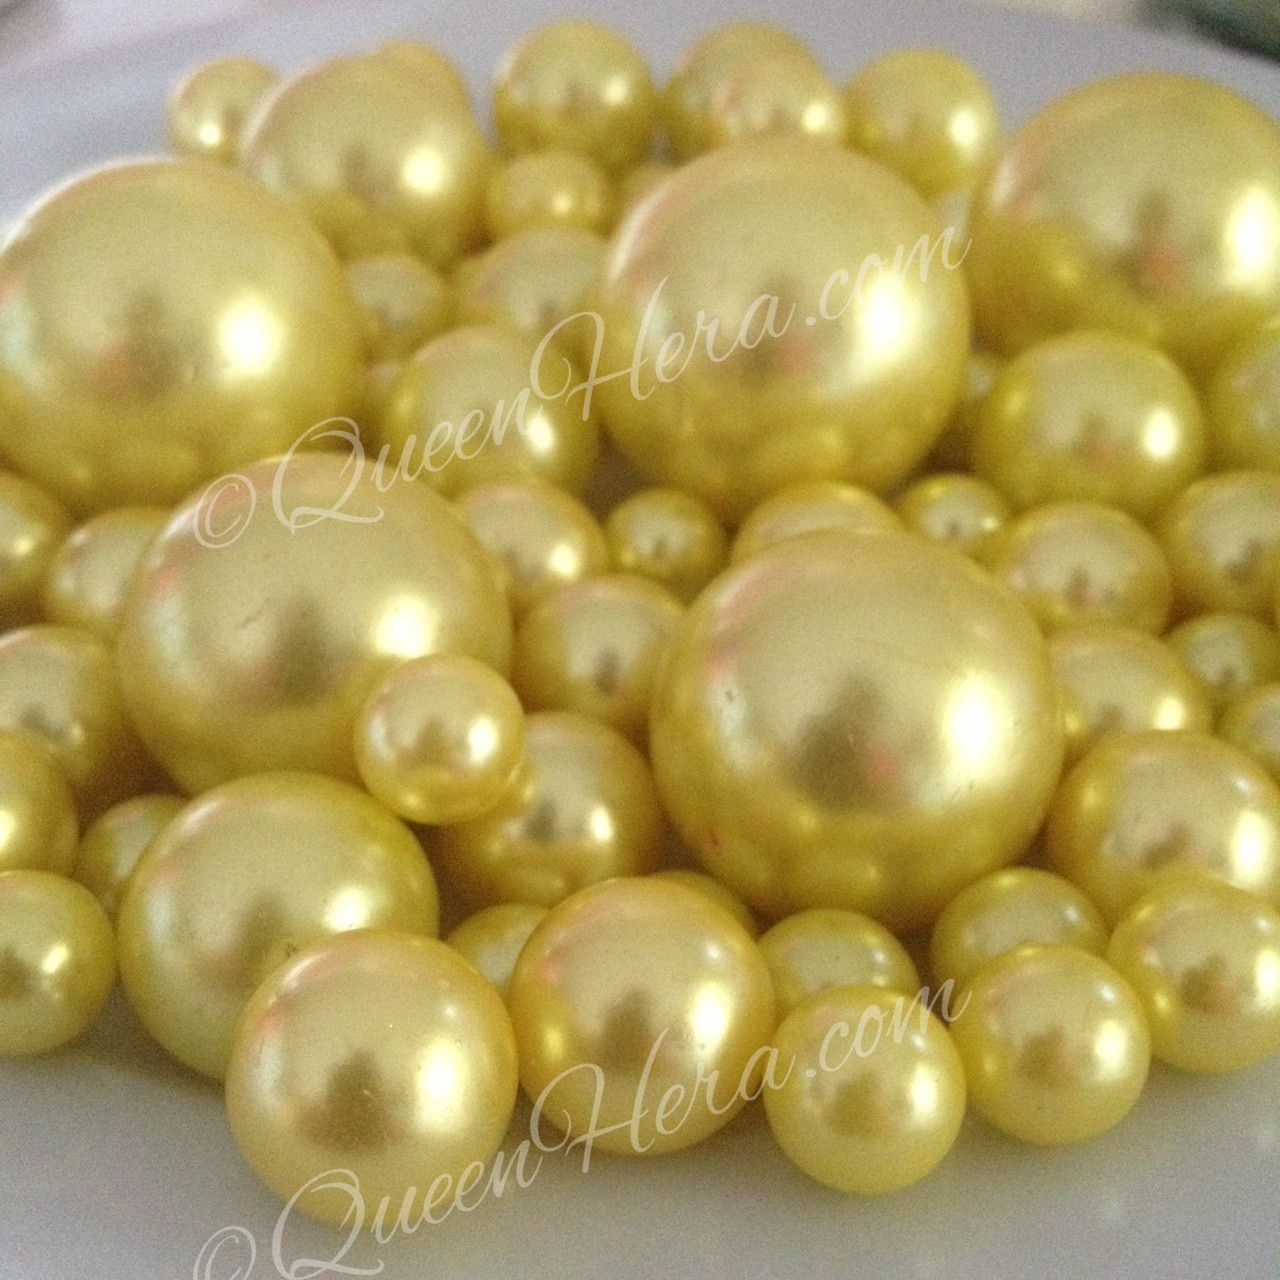 tahitian circle pearls price productdetails sea necklace south buy product necklaces yellow pages golden imperial pearl image gold